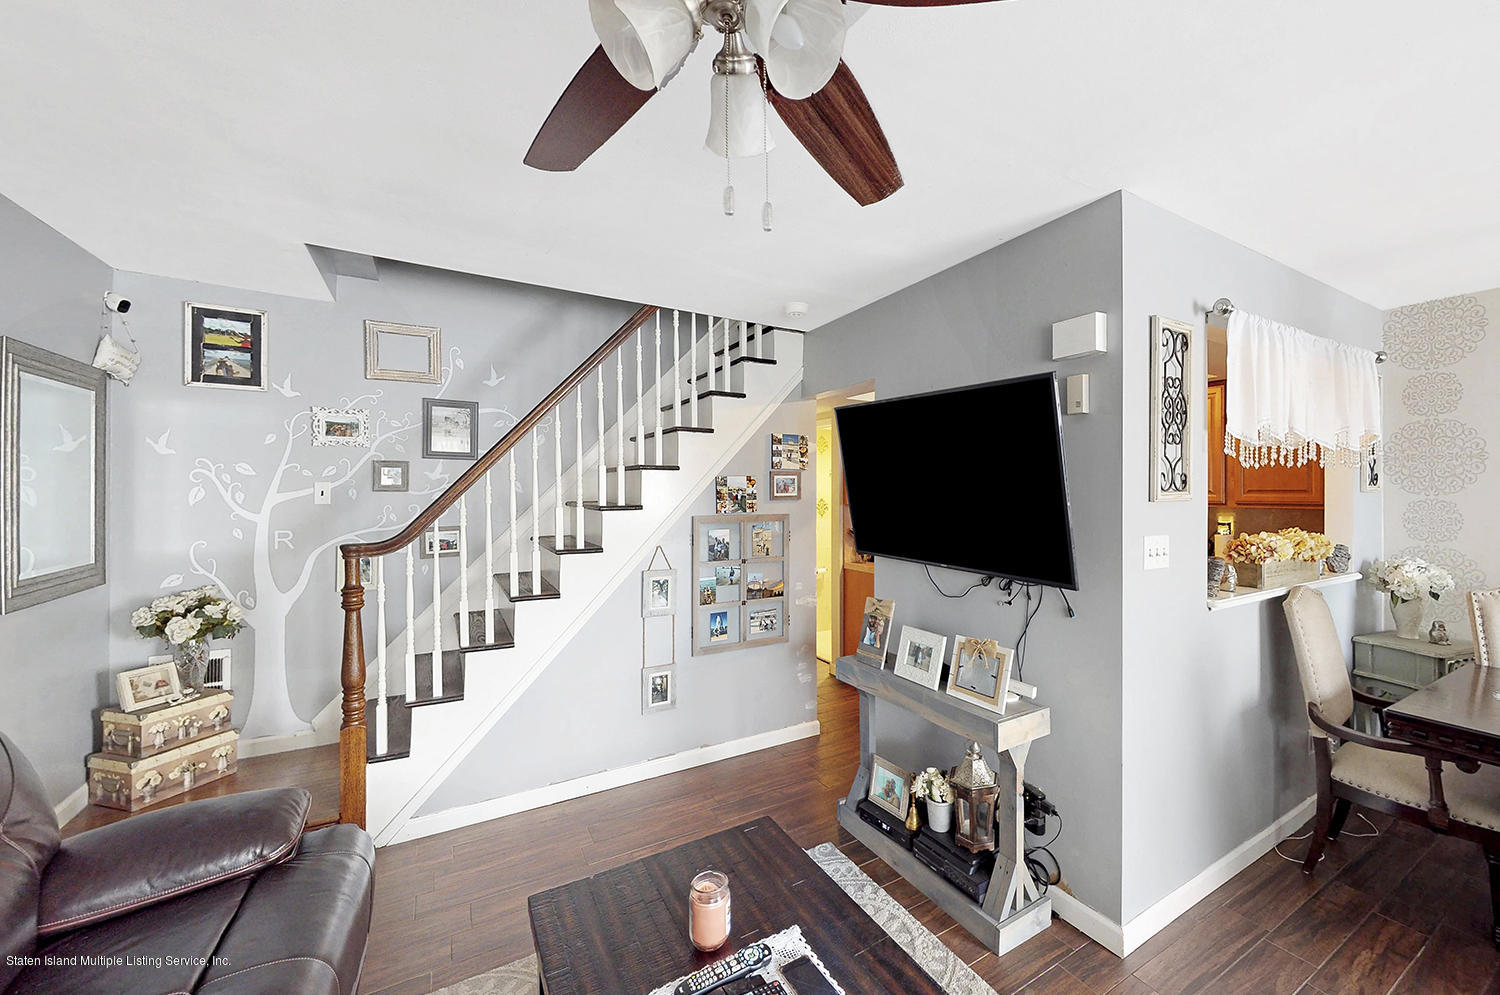 Single Family - Attached 10 Greentree Lane A  Staten Island, NY 10314, MLS-1131041-10